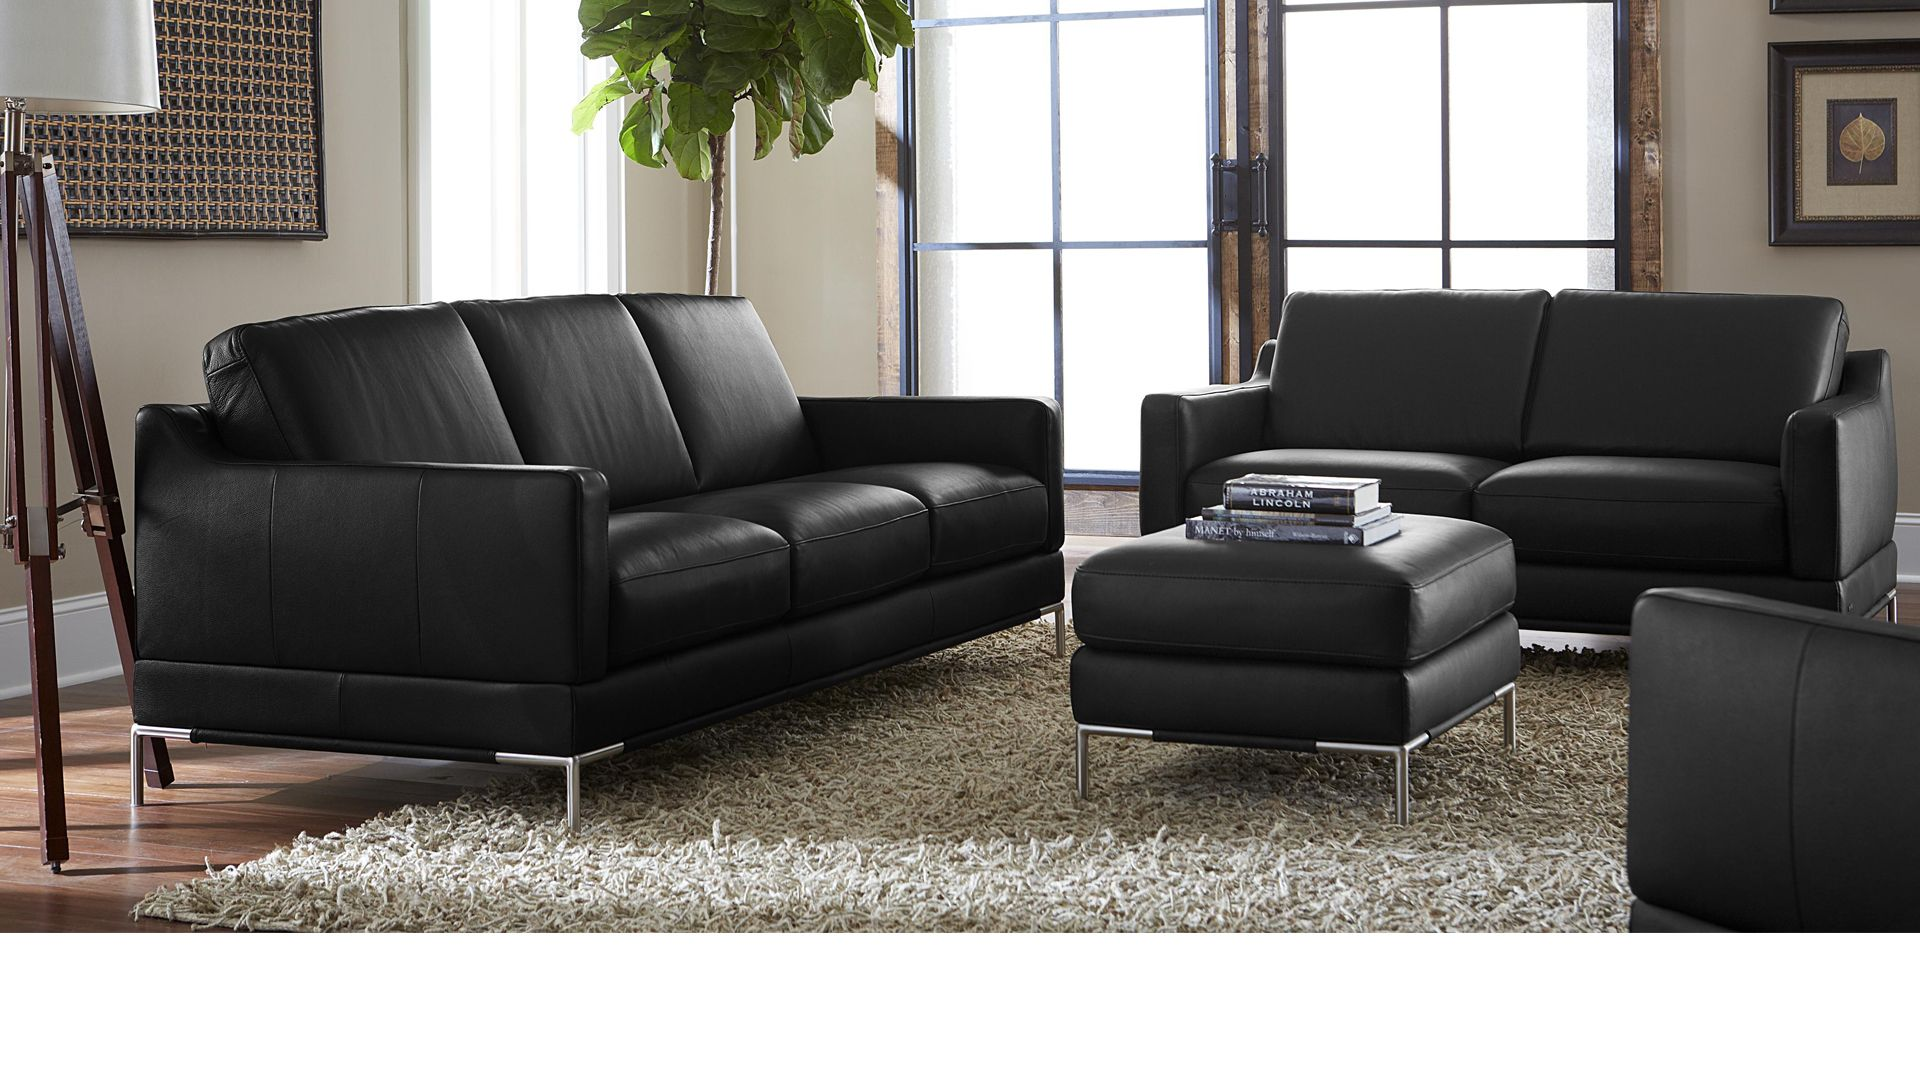 Sofa Beds Denver Co Lodge Focus On Furniture By Natuzzi Editions And Sectionals Pinterest